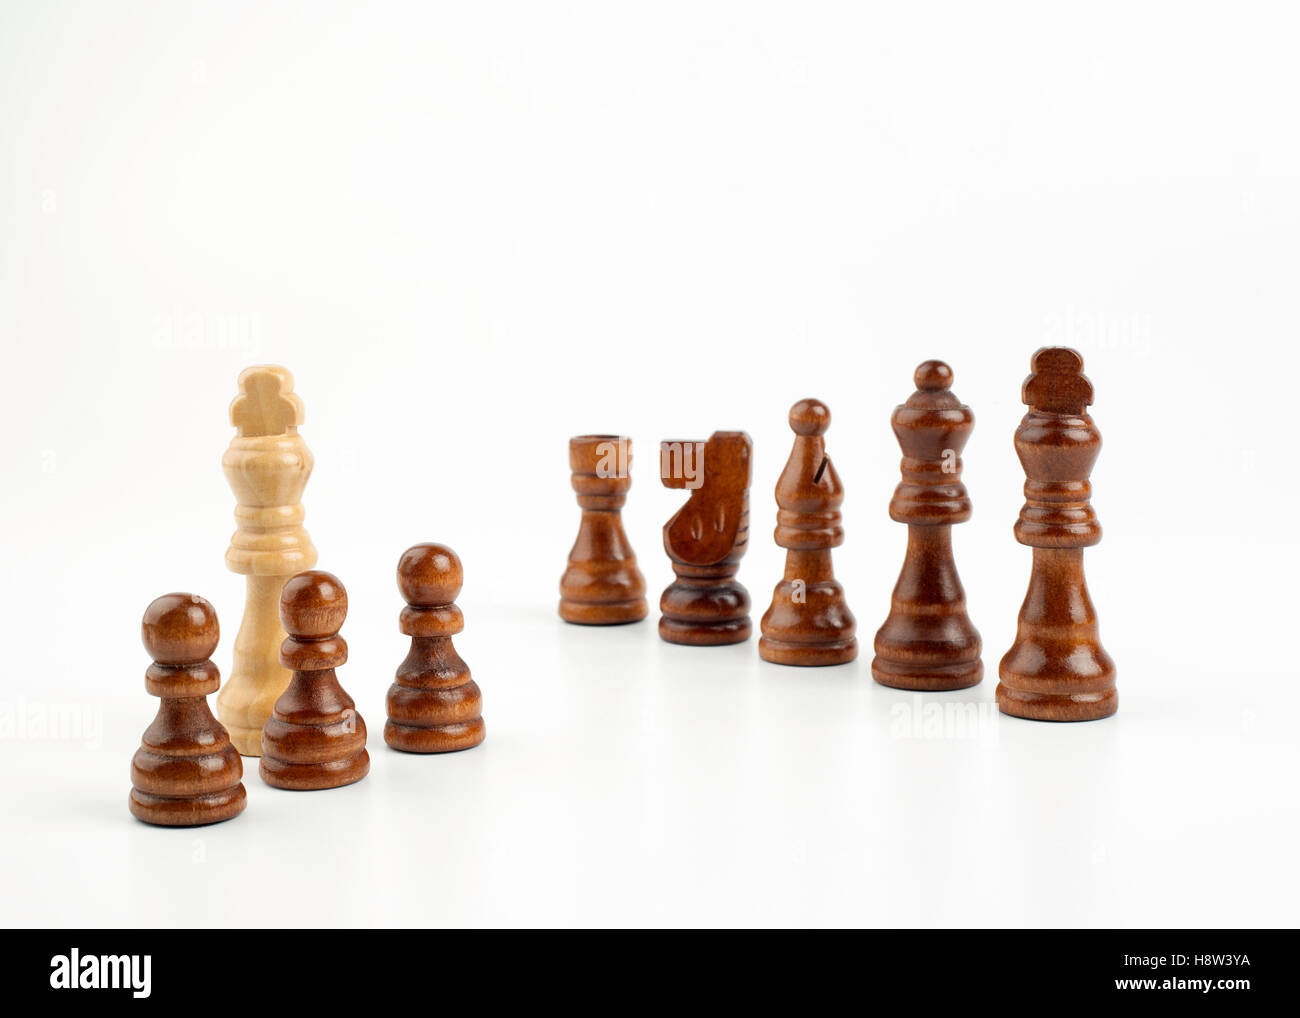 Chess pawns on a white background - Stock Image